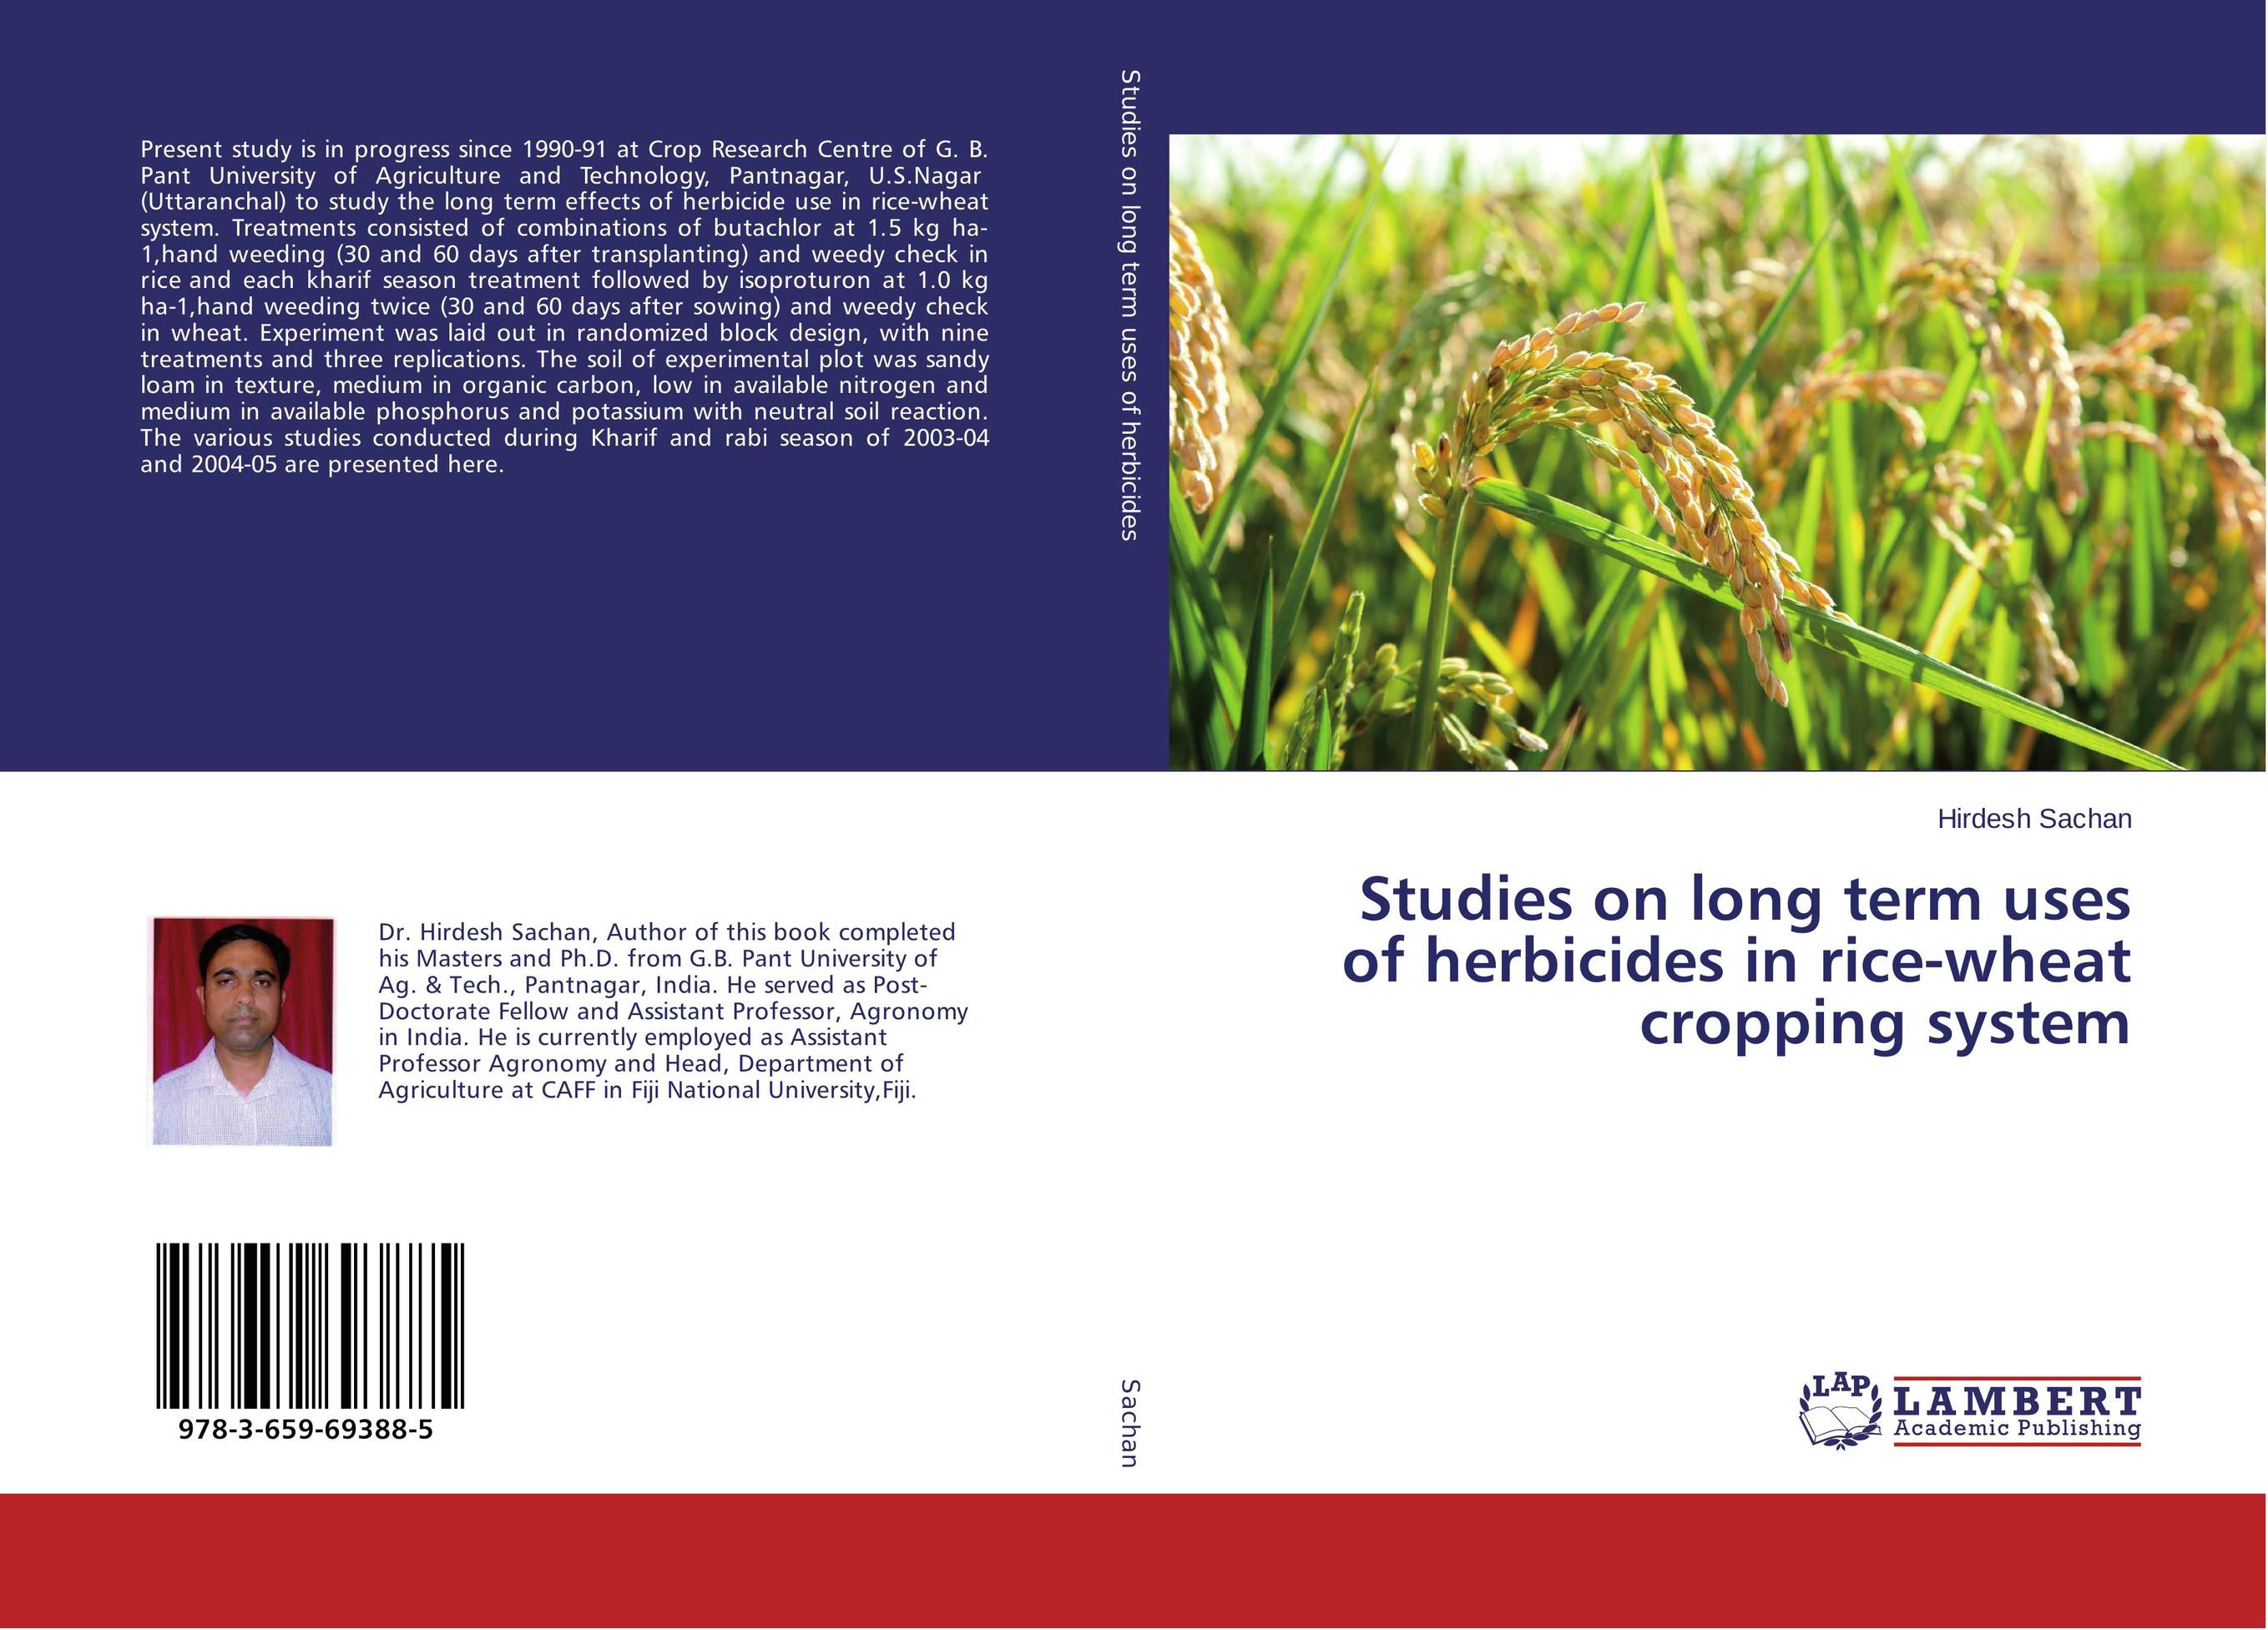 Studies on long term uses of herbicides in rice-wheat cropping system studies on long term uses of herbicides in rice wheat cropping system